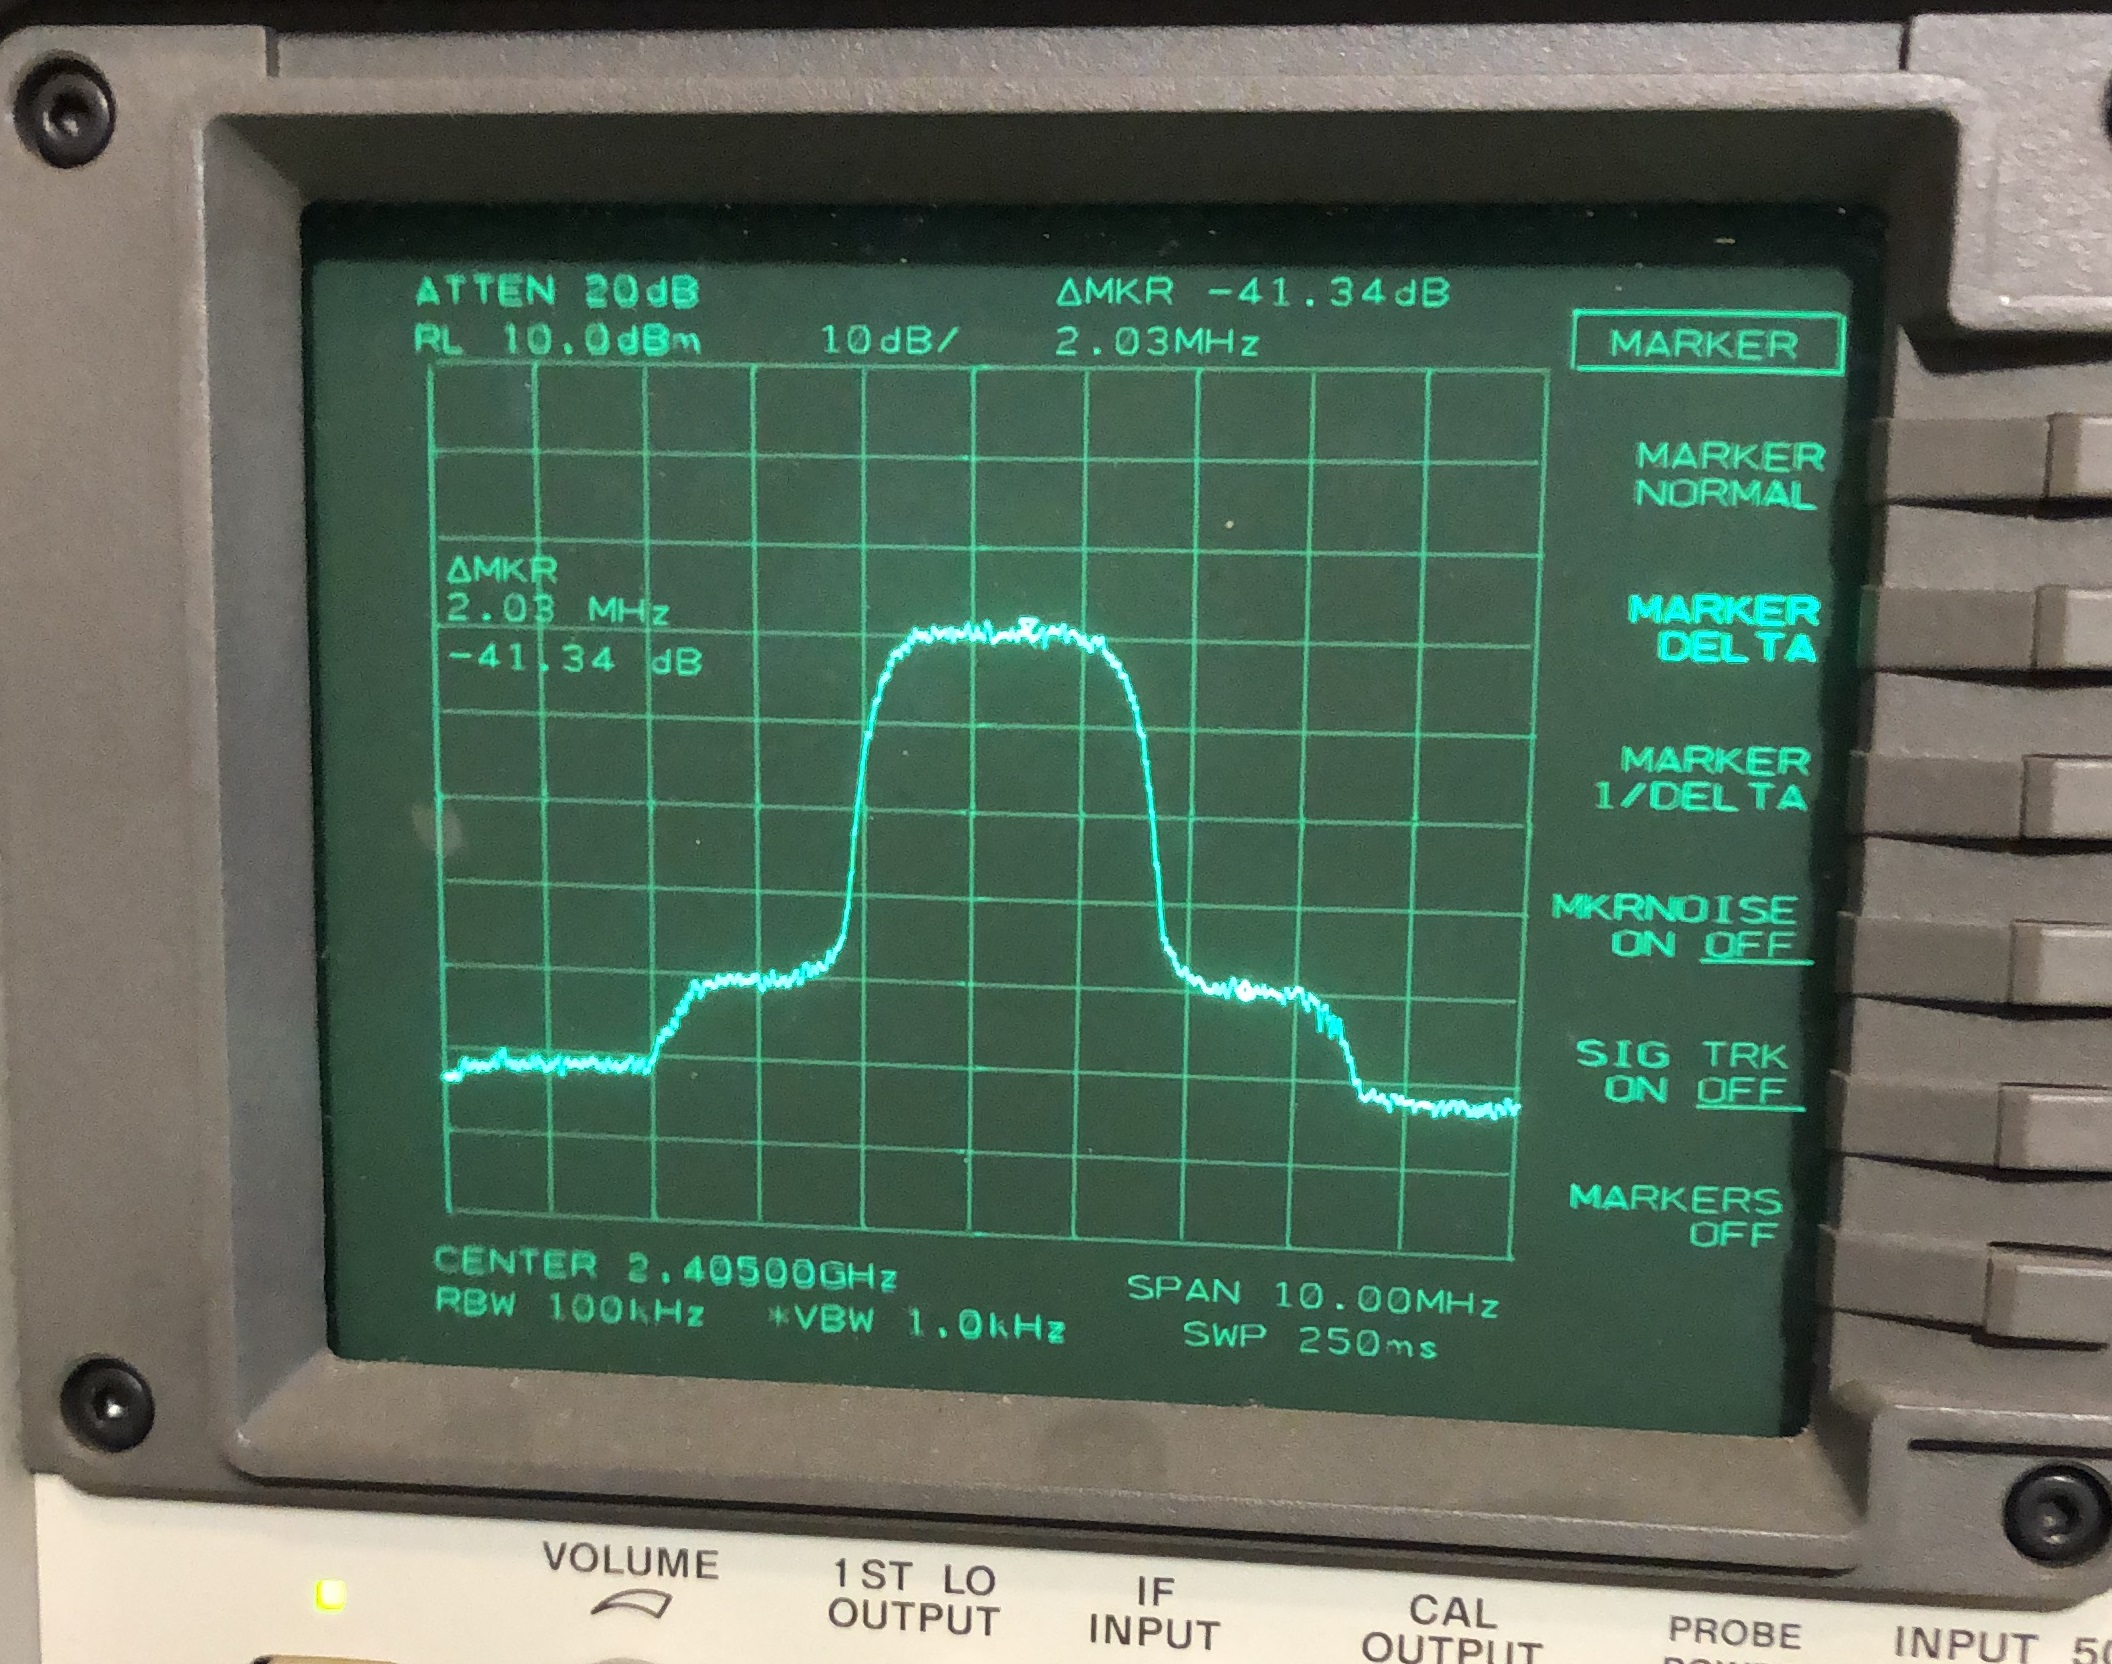 q3-dattv-1ms-300mw_out-36db_pluto-6db.jpg